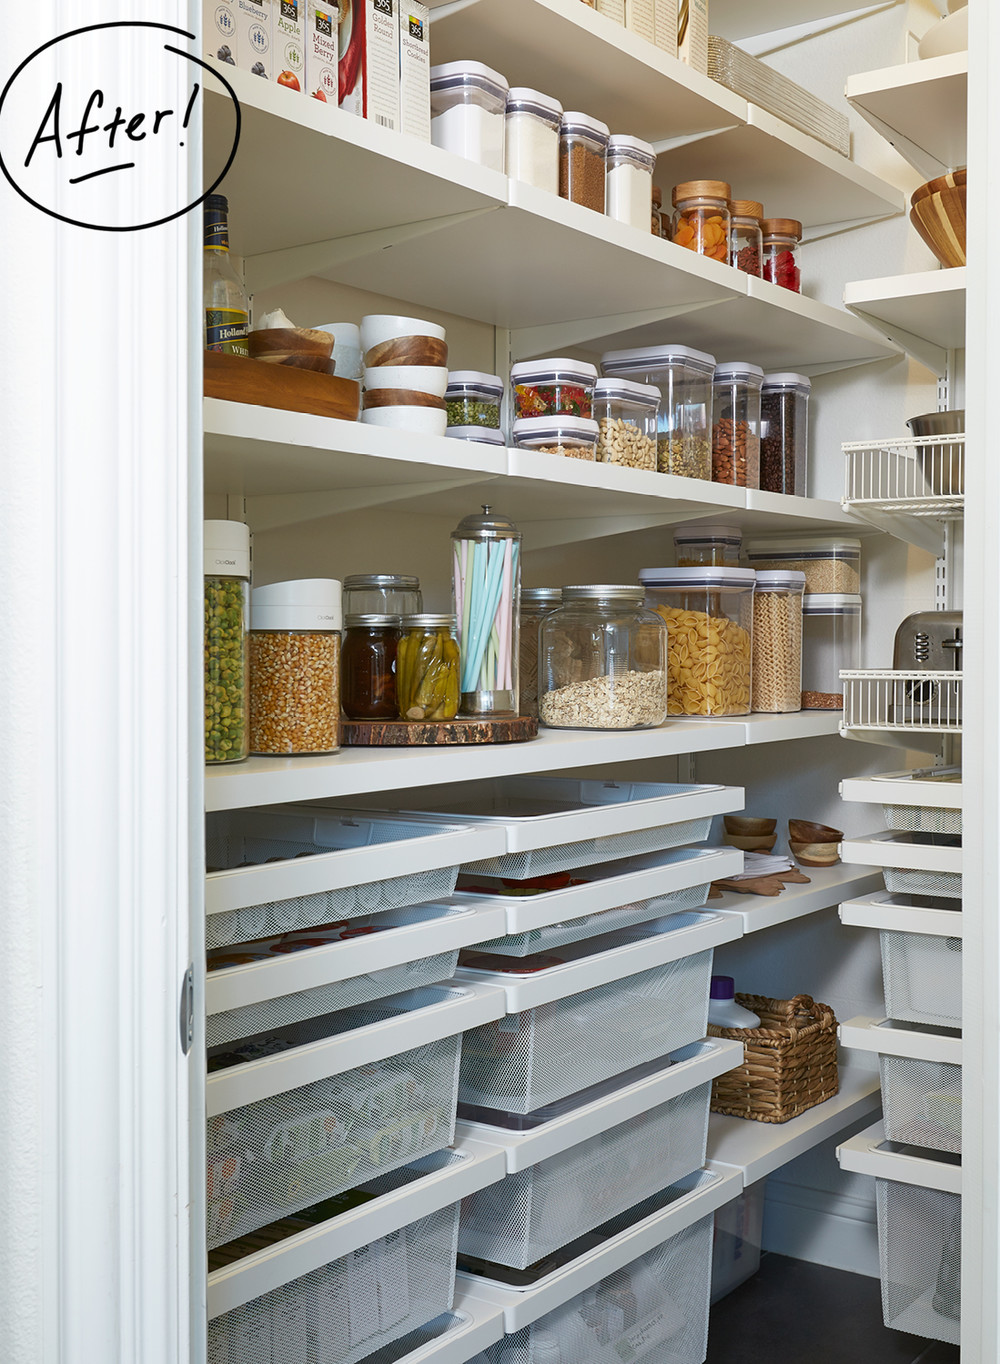 Design Elfa Pantry this pantry gets perfected with an elfa transformation container featured products white kitchen solution artisan glass canisters oak lids anchor hocking jars